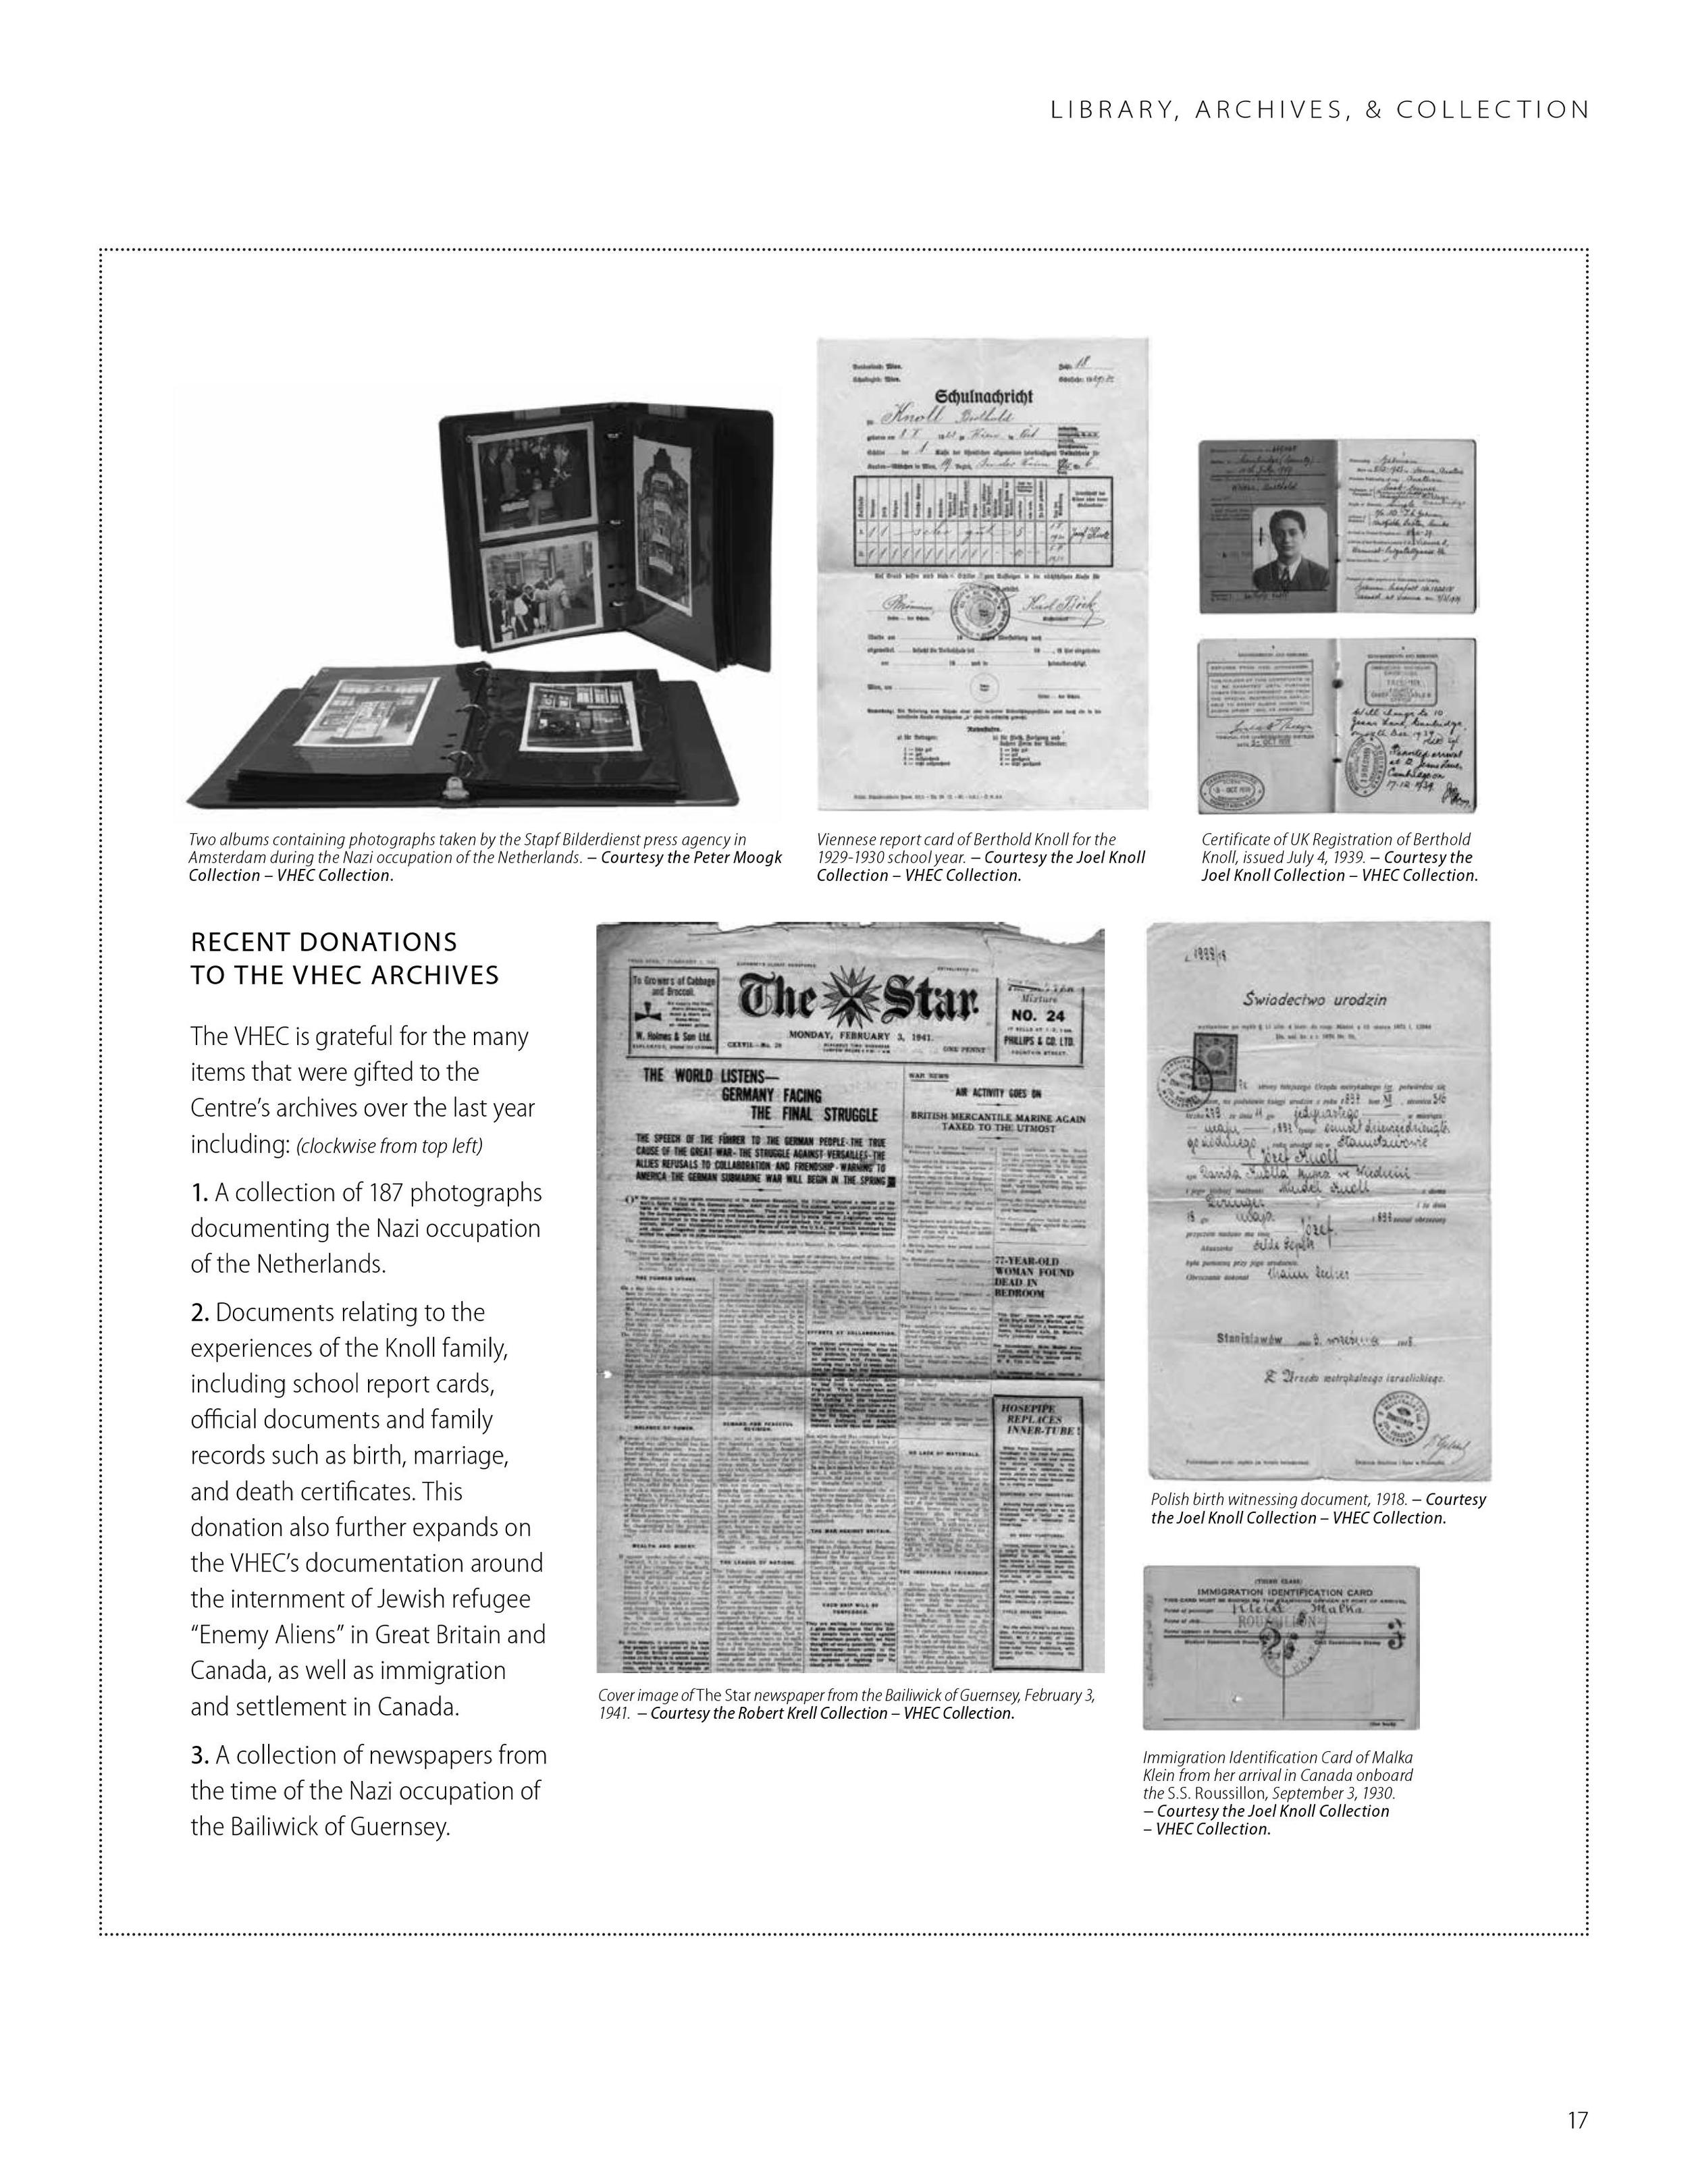 """Vancouver Holocaust Education Center, """"Recent Donations to the VHEC Archives,"""" VHEC Annual Report 2015, page 17. Content by the VHEC Collections team. Photograph at top left by Katie Powell. Design by Illene Yu. Courtesy of the VHEC."""